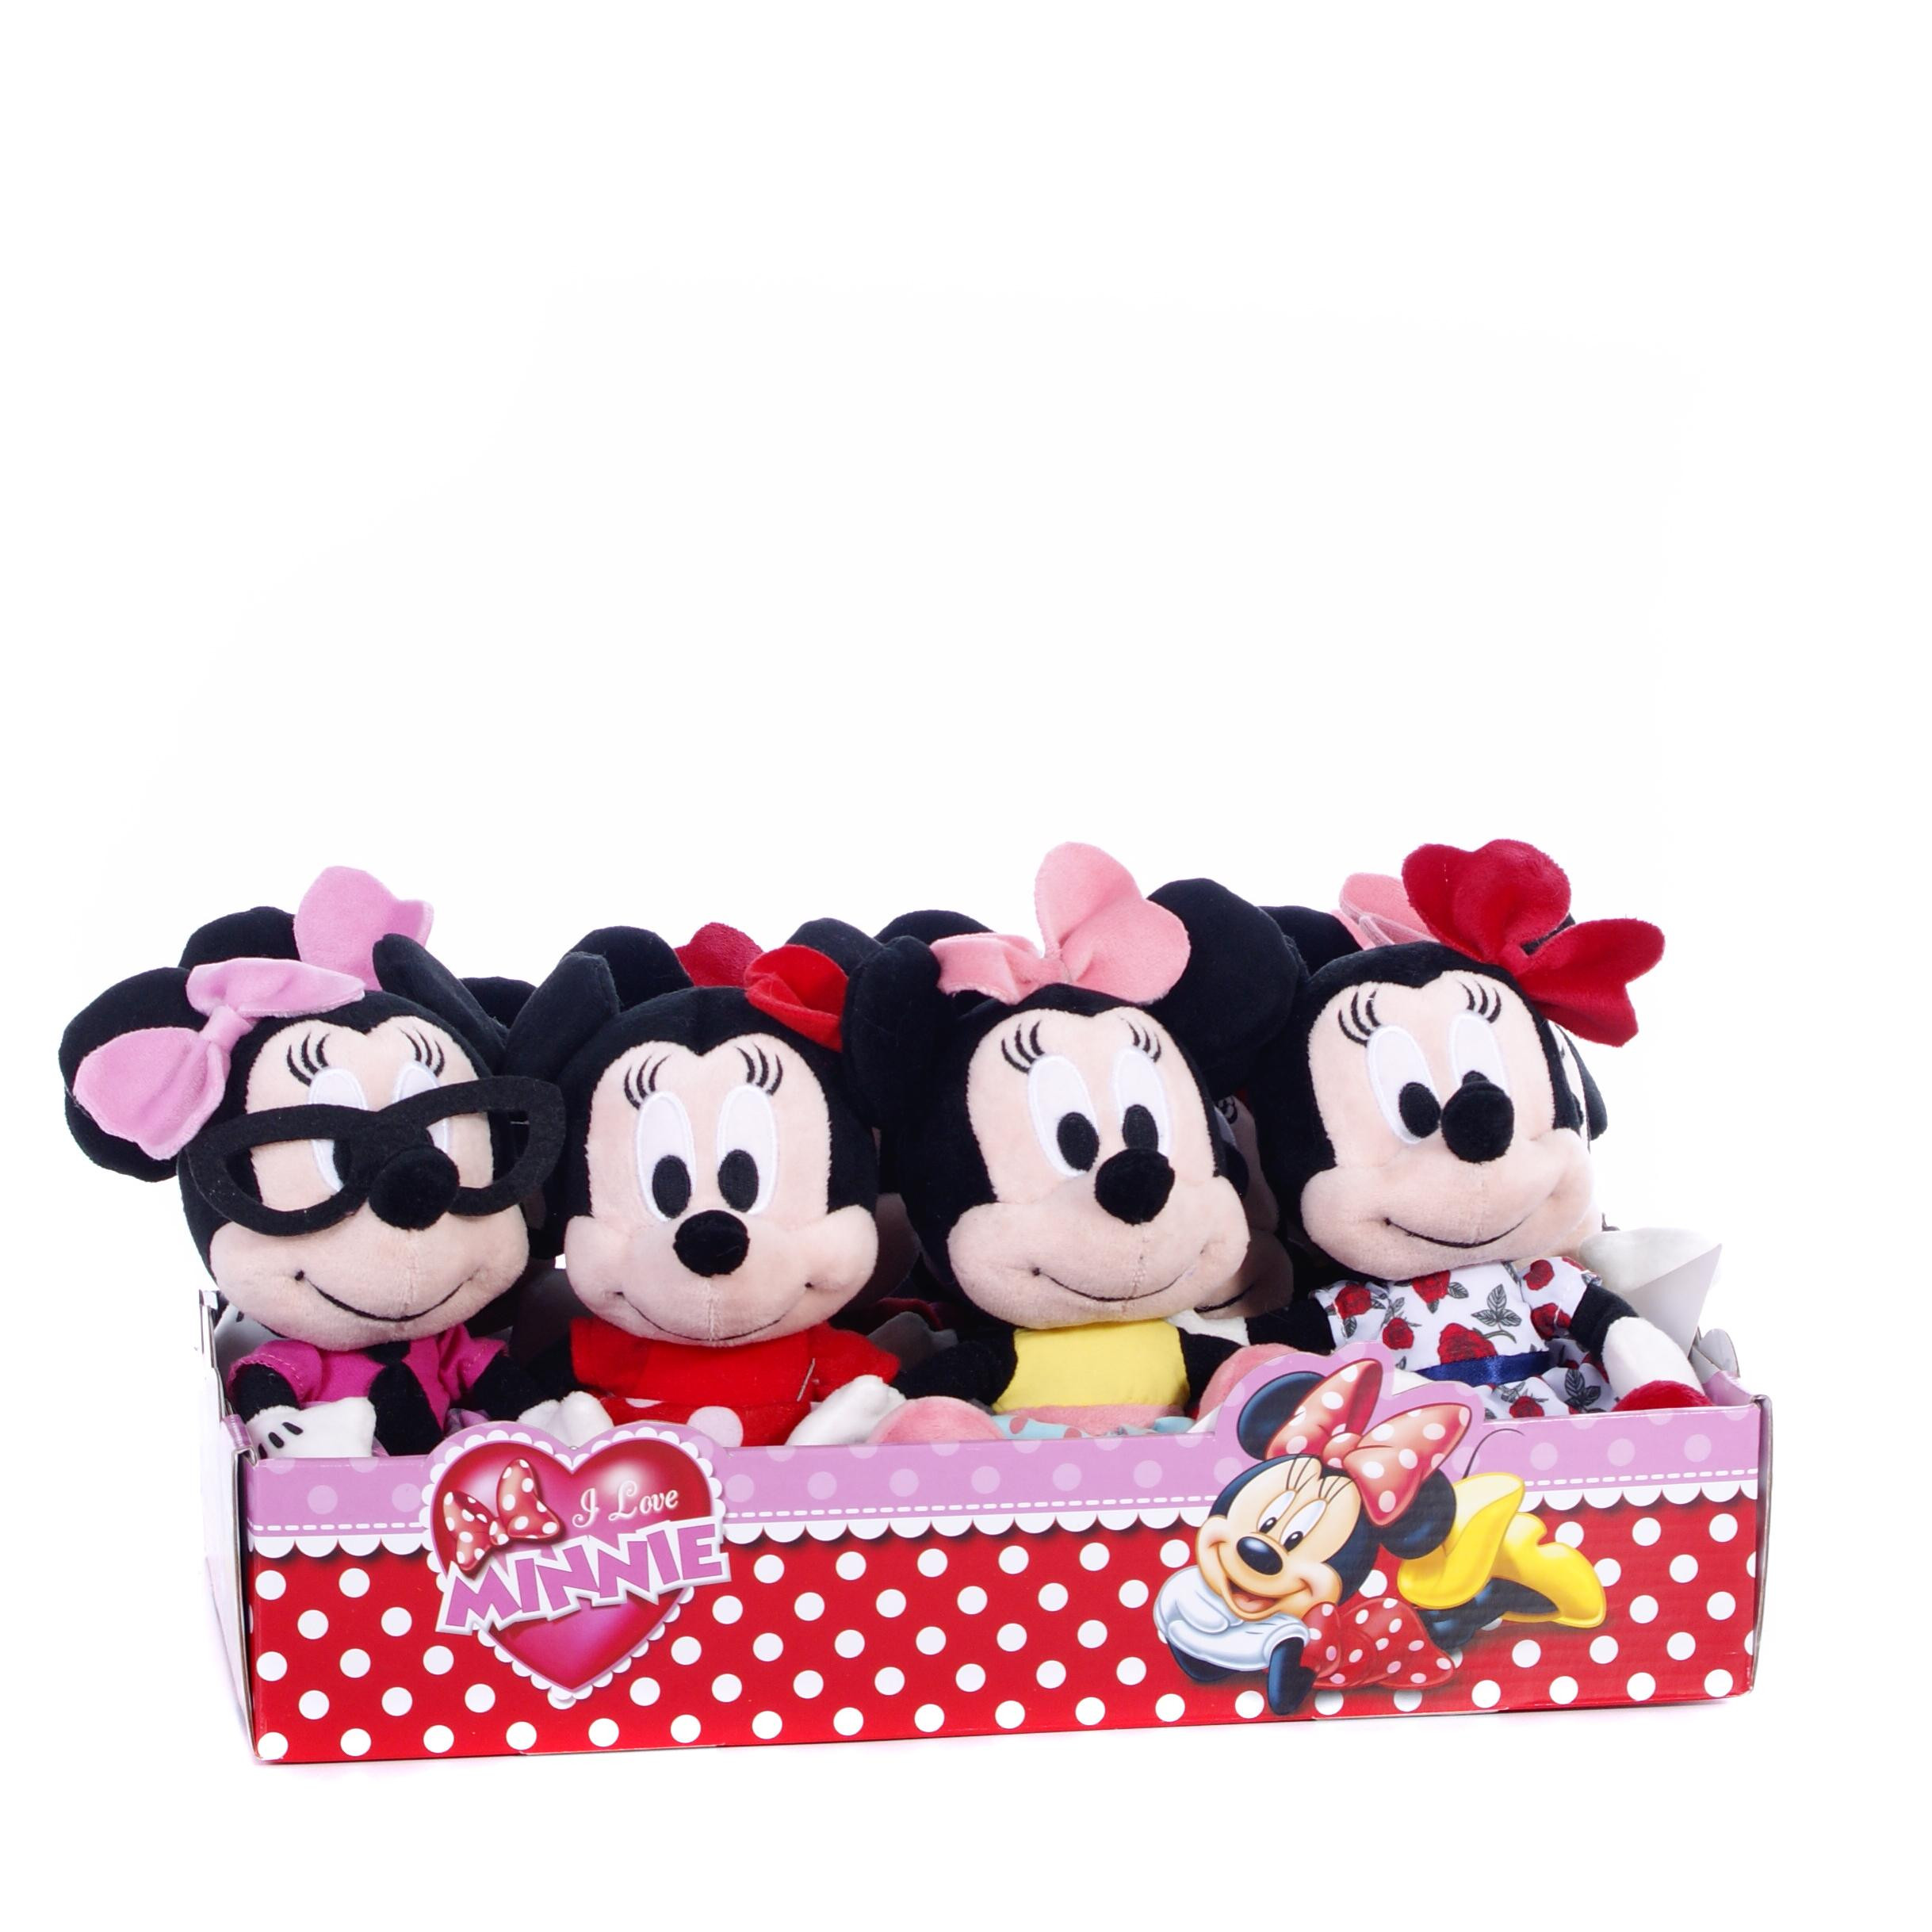 Disney Minnie Mouse 8in Assortment